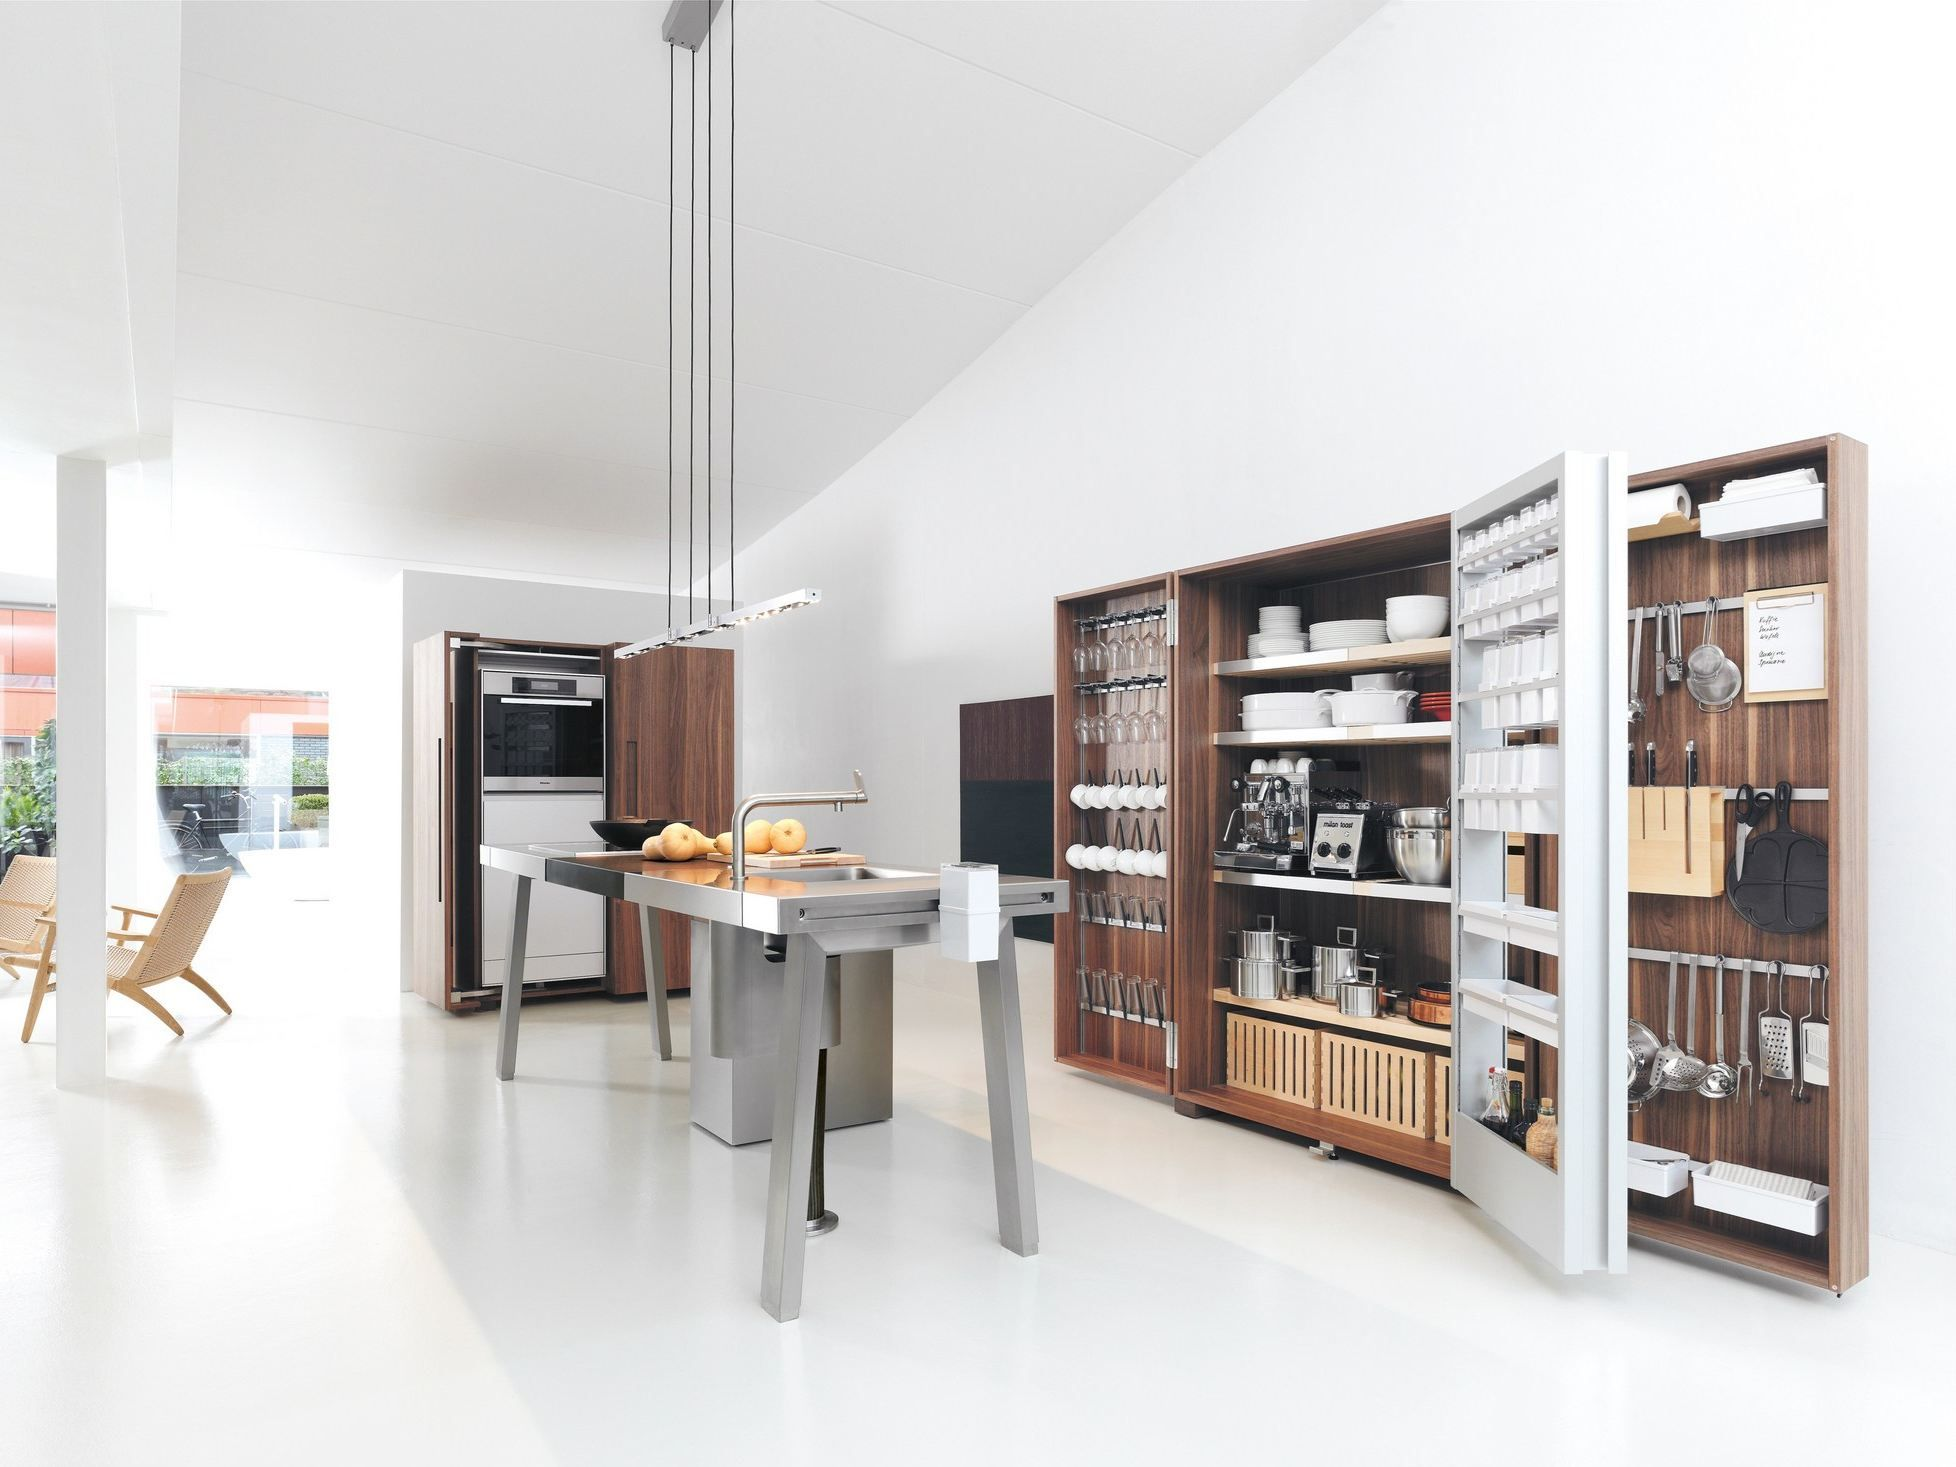 Fitted Kitchen B2 B2 Collection By Bulthaup Design Eoos  # Muebles Bulthaup